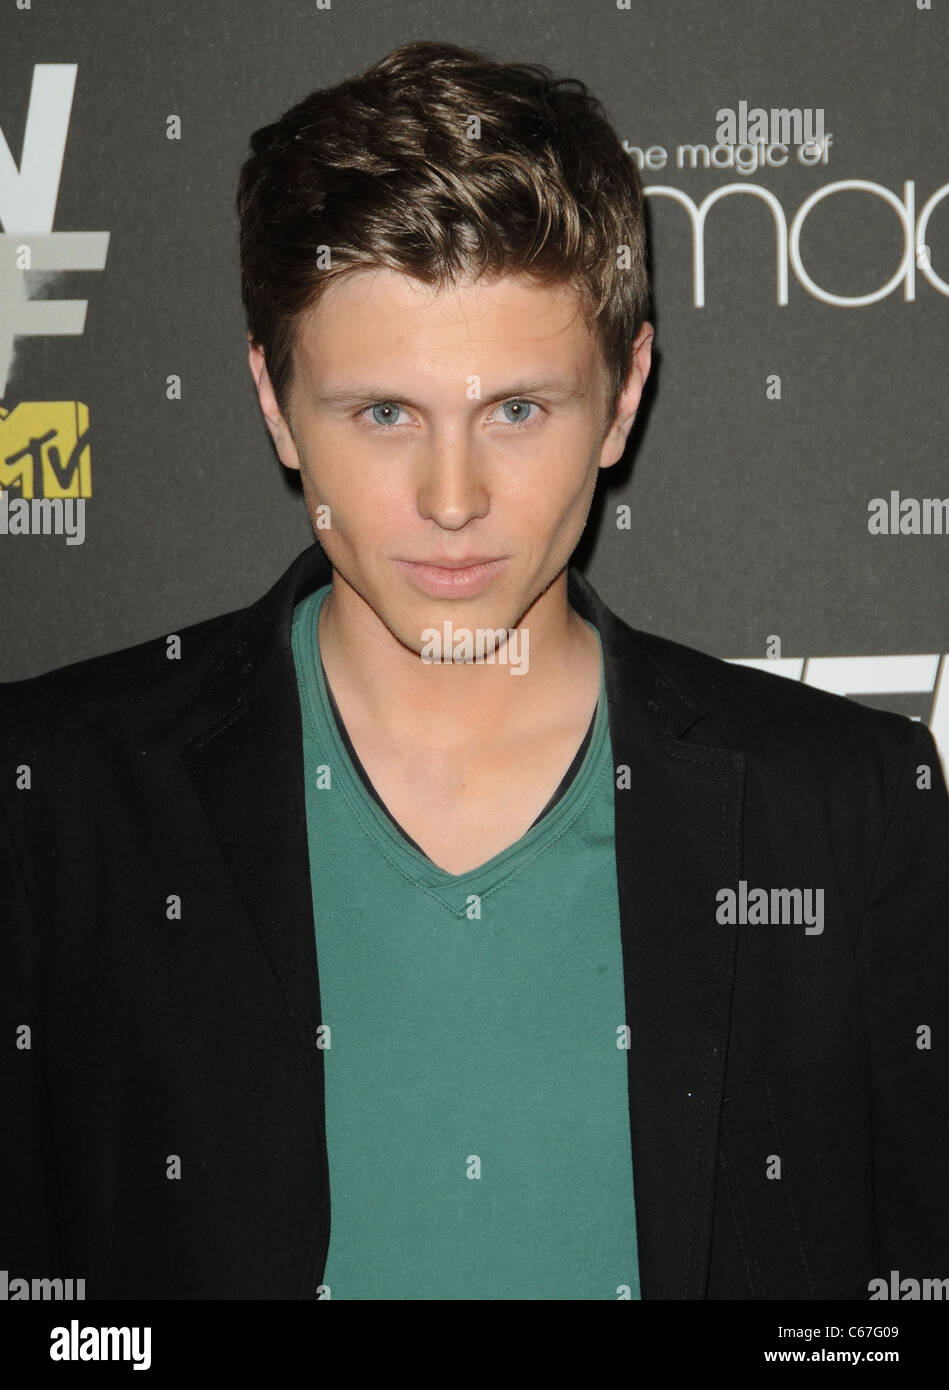 David Lewis at arrivals for TEEN WOLF Premiere Party, Roosevelt Hotel, Los Angeles, CA May 25, 2011. Photo By: Dee - Stock Image